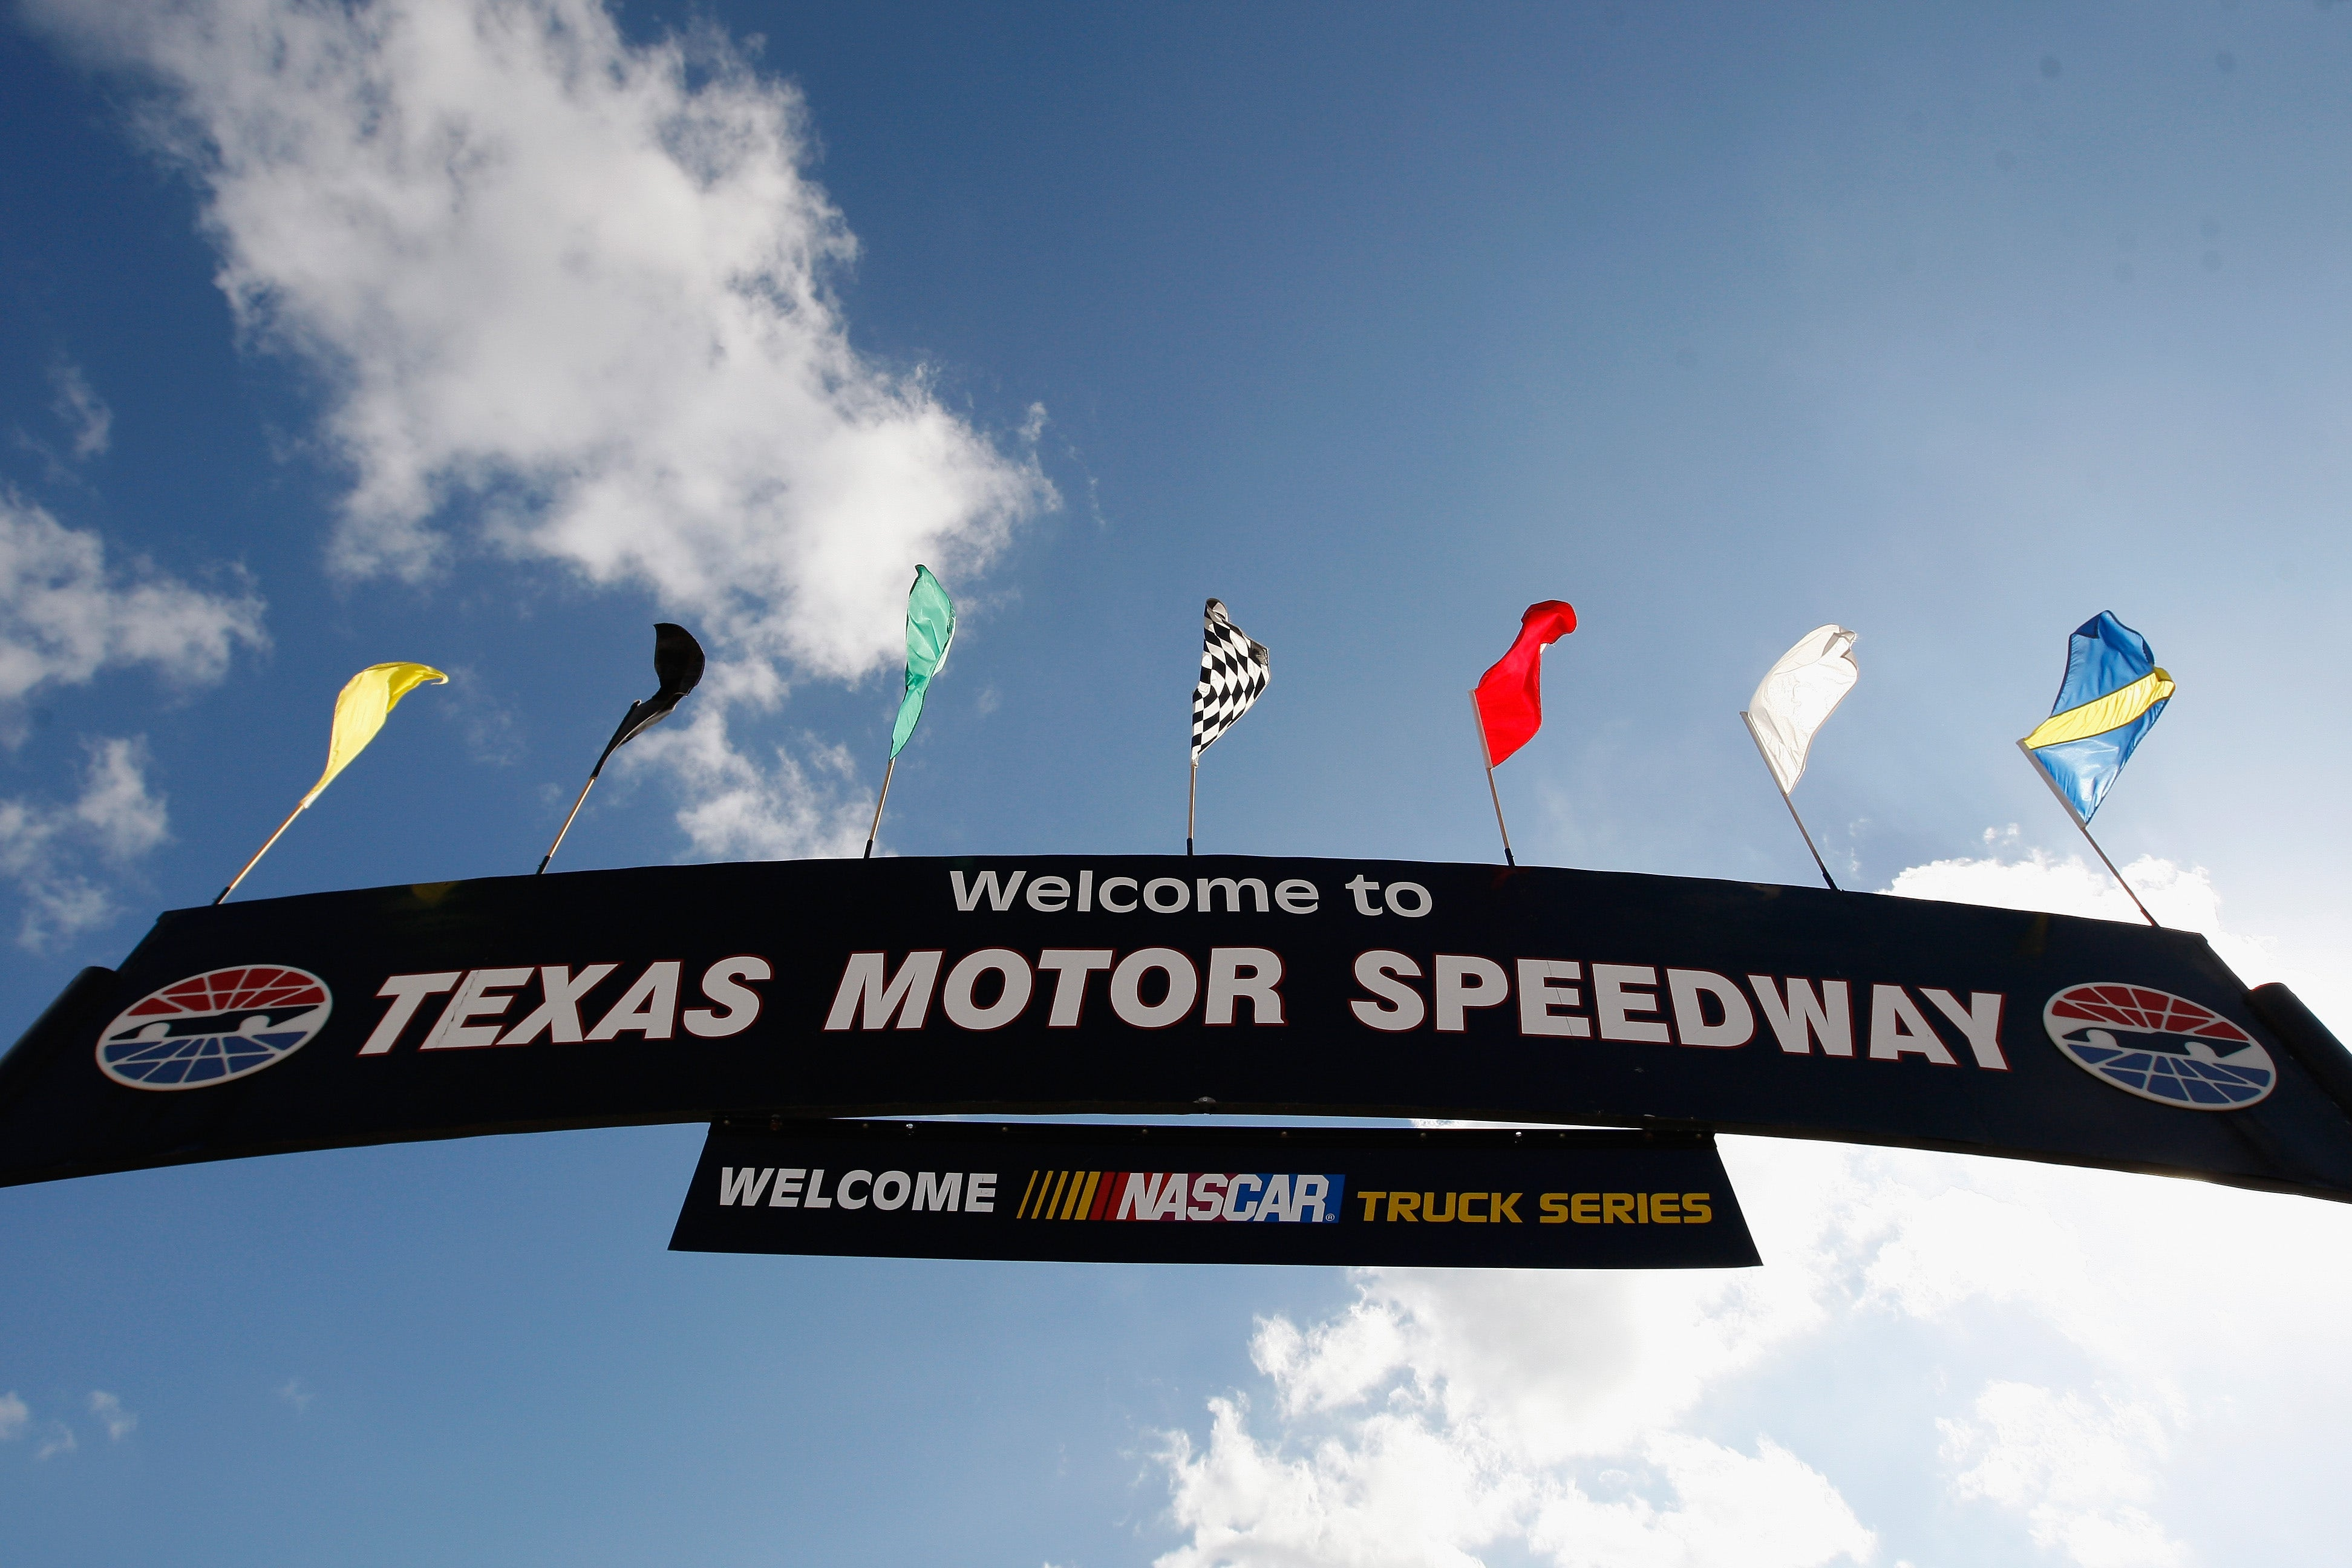 Texas Motor Speedway wants to host Texas-Texas A&M in front of 200k people | FOX Sports